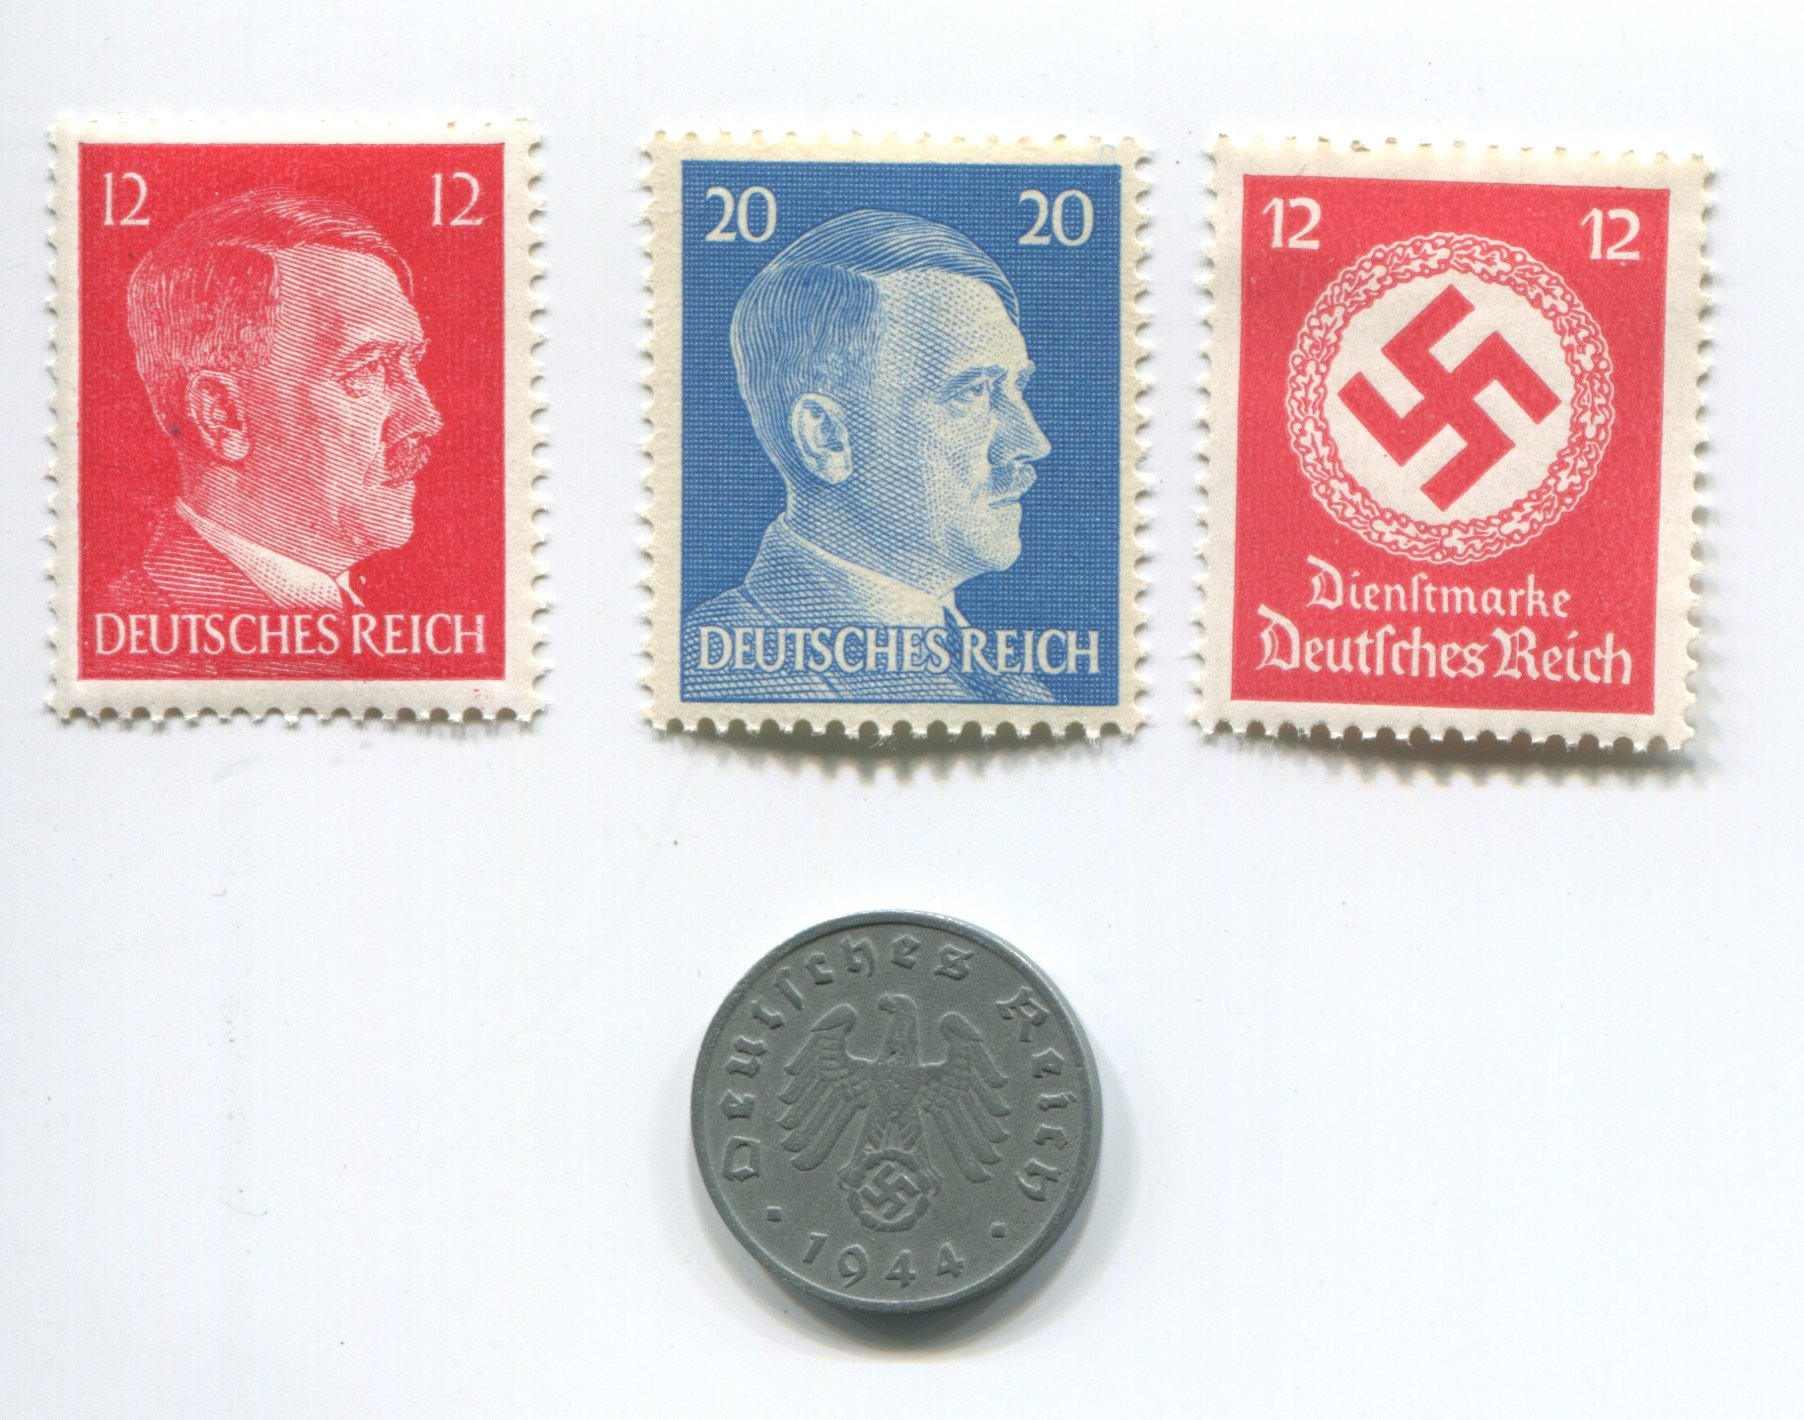 Premium Nazi World War Two WW2 German Third Reich Swastika Coin and Hitler Stamp Set / Collection